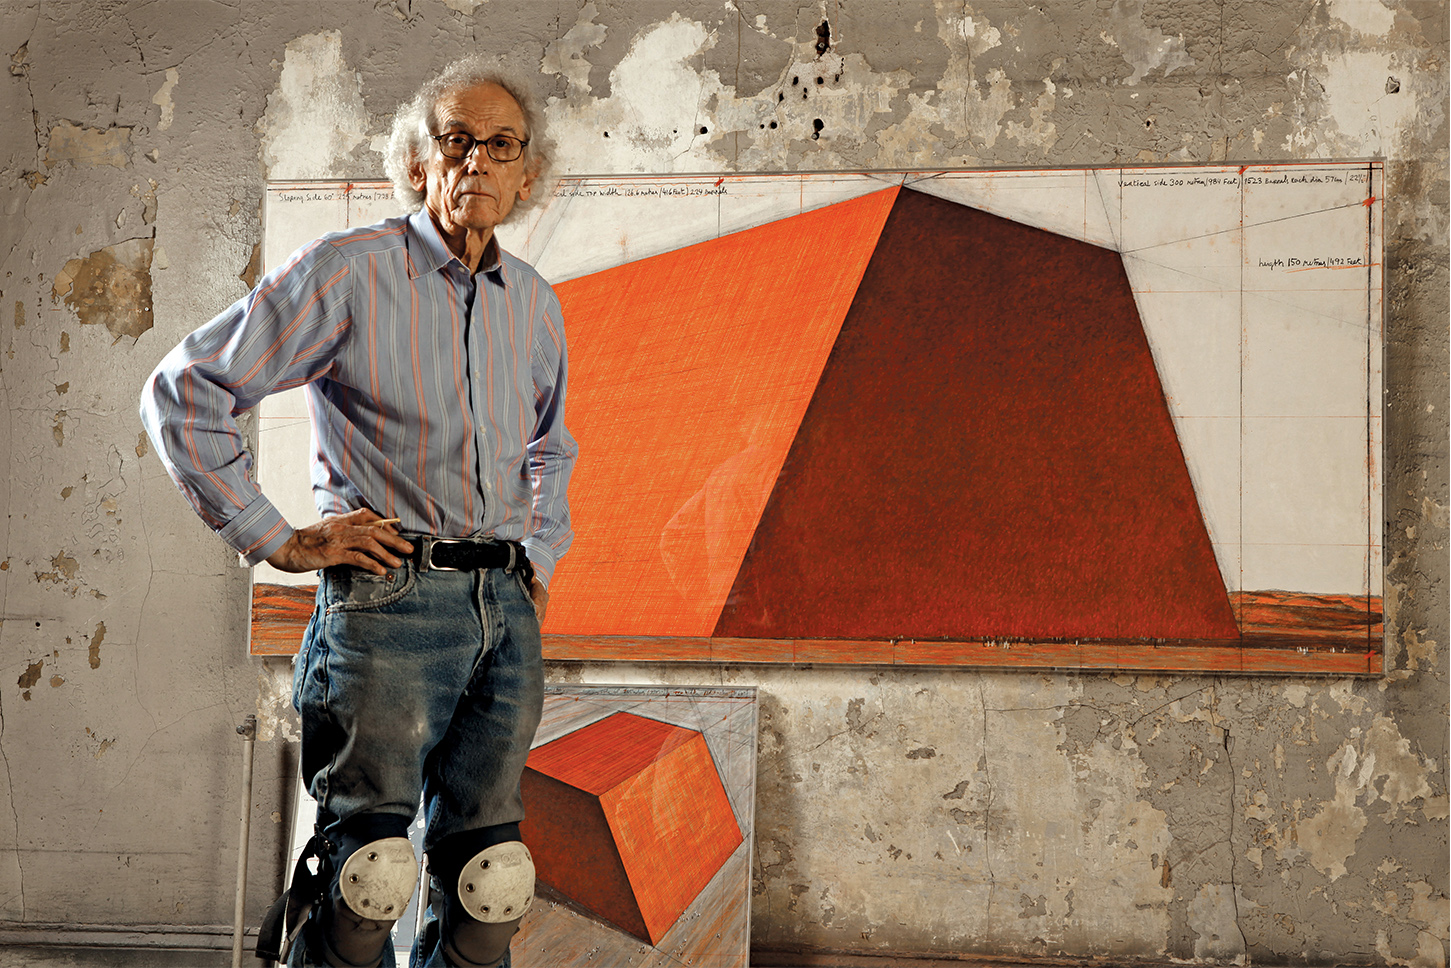 Christo in his studio with a preparatory drawing for The Mastaba, 2012, Photo: Wolfgang Volz, © 2012 Christo